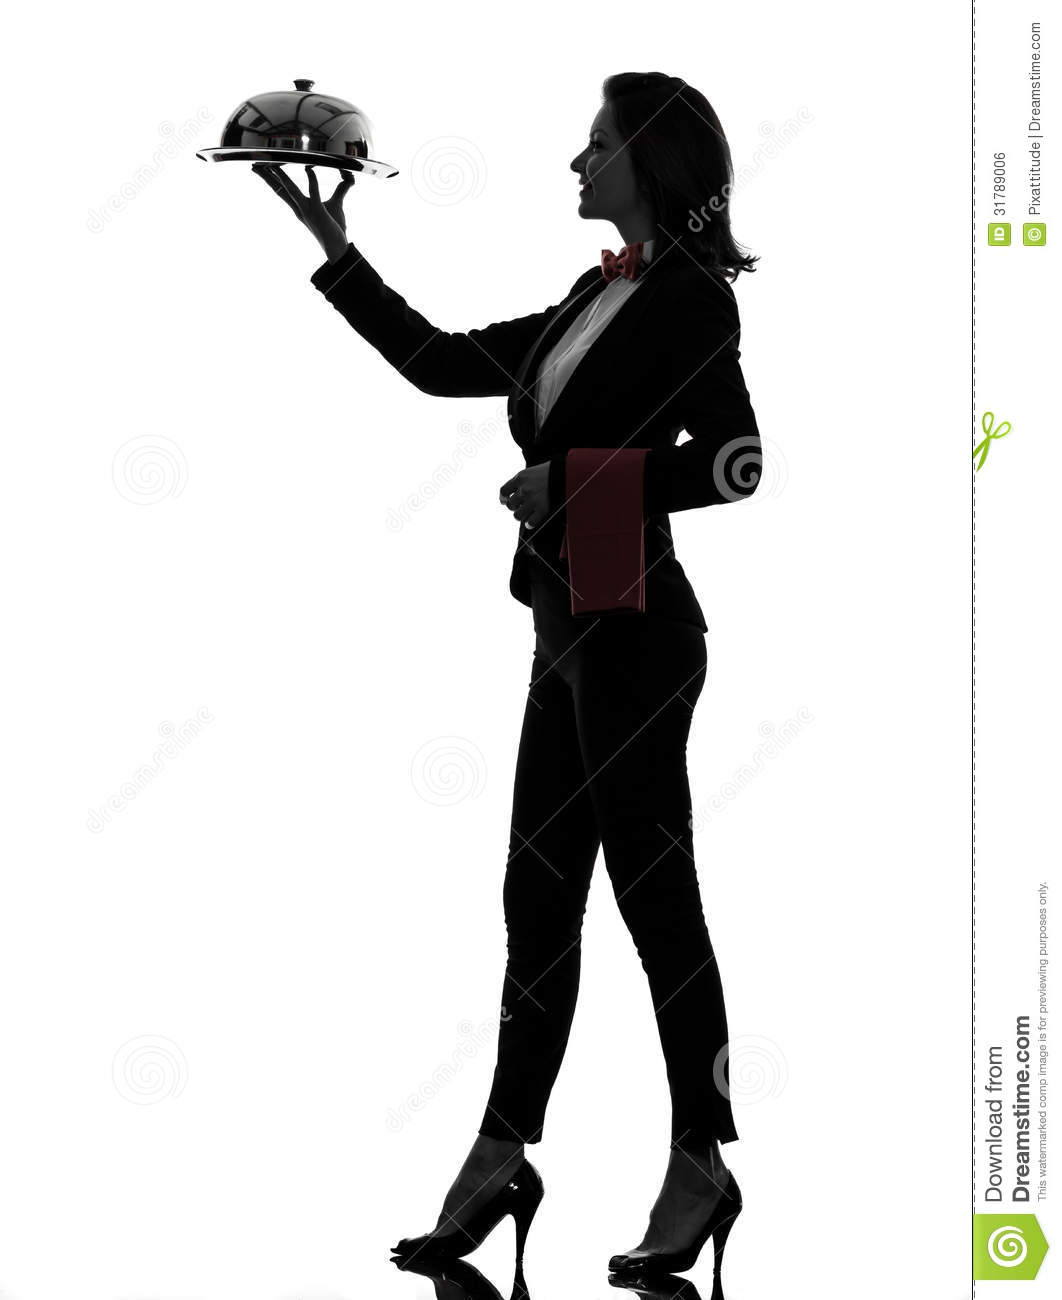 woman waiter butler serving dinner silhouette royalty free